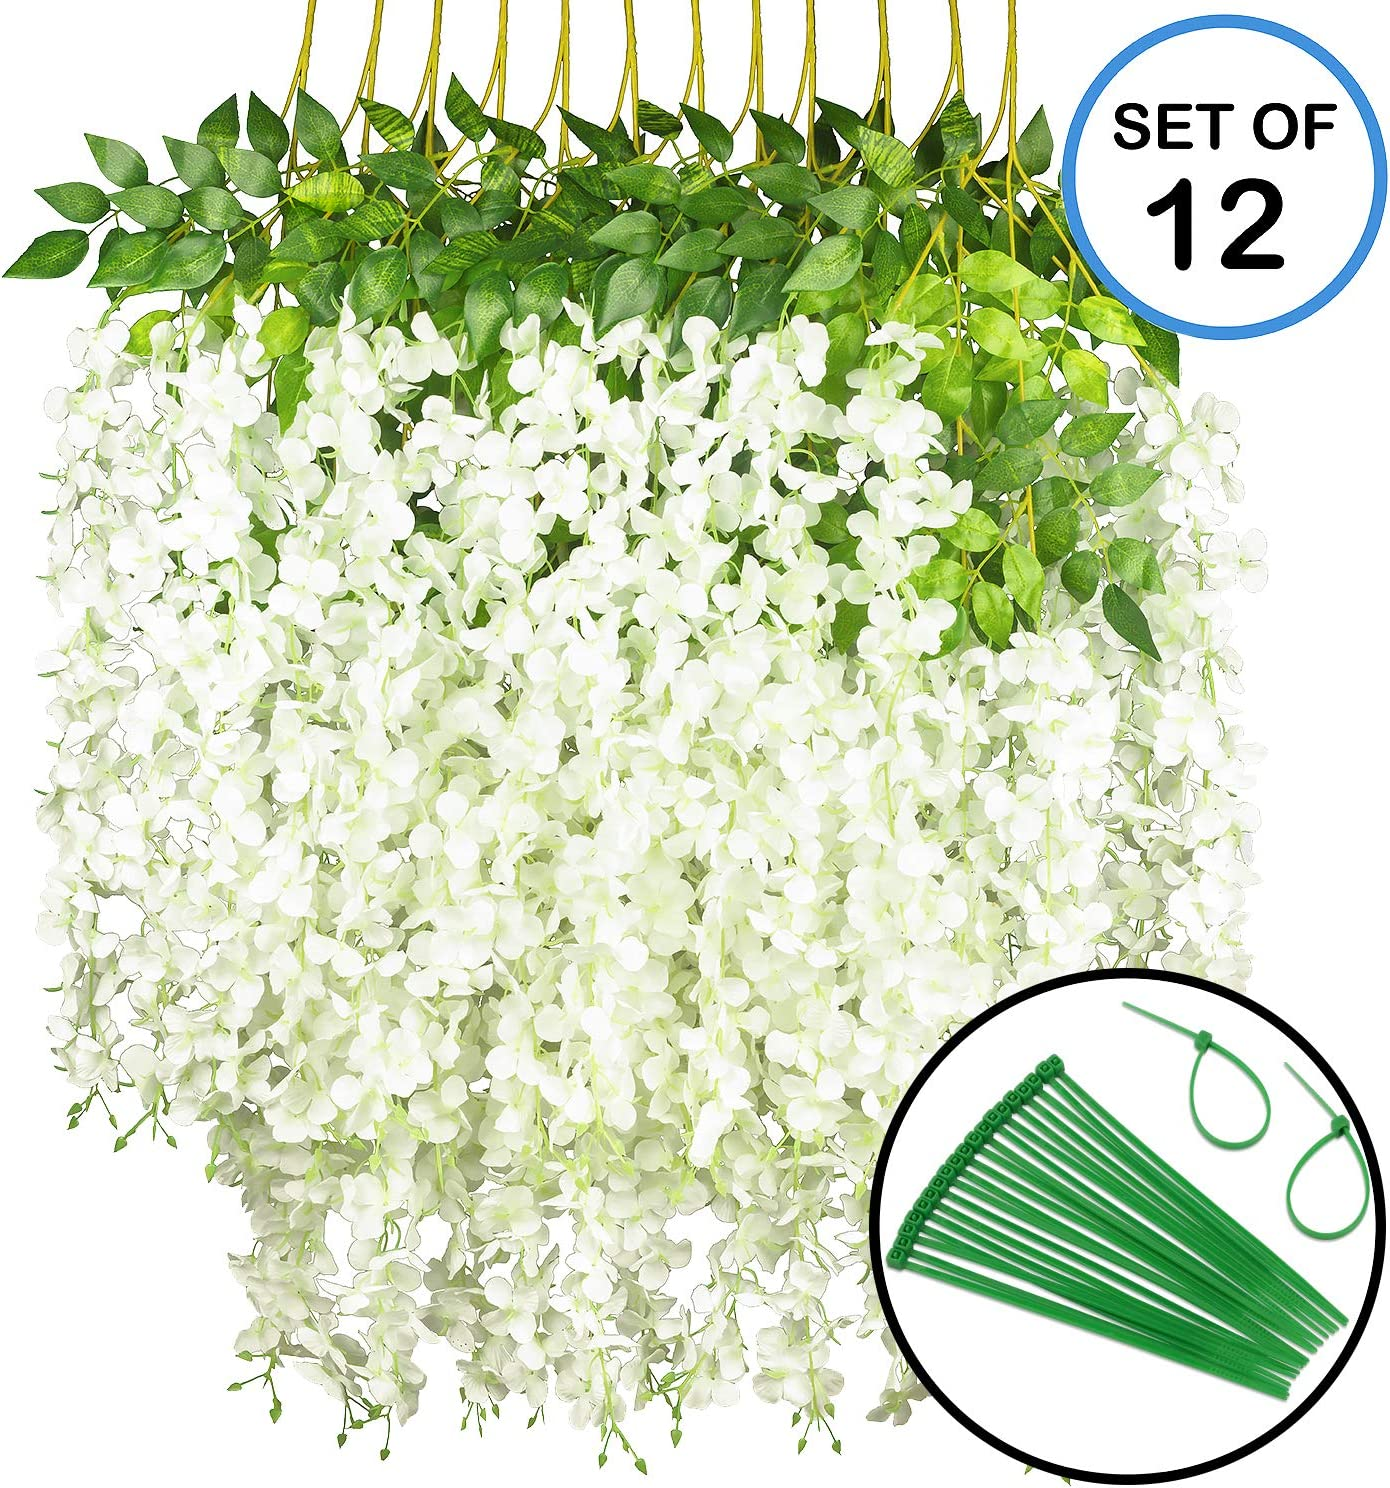 GPARK 12 Pieces Wisteria Artificial Flower 45 inch Bushy Silk Vine Ratta Hanging Garland Hanging for Wedding Party Garden Outdoor Greenery Office Wall Decoration Milk White